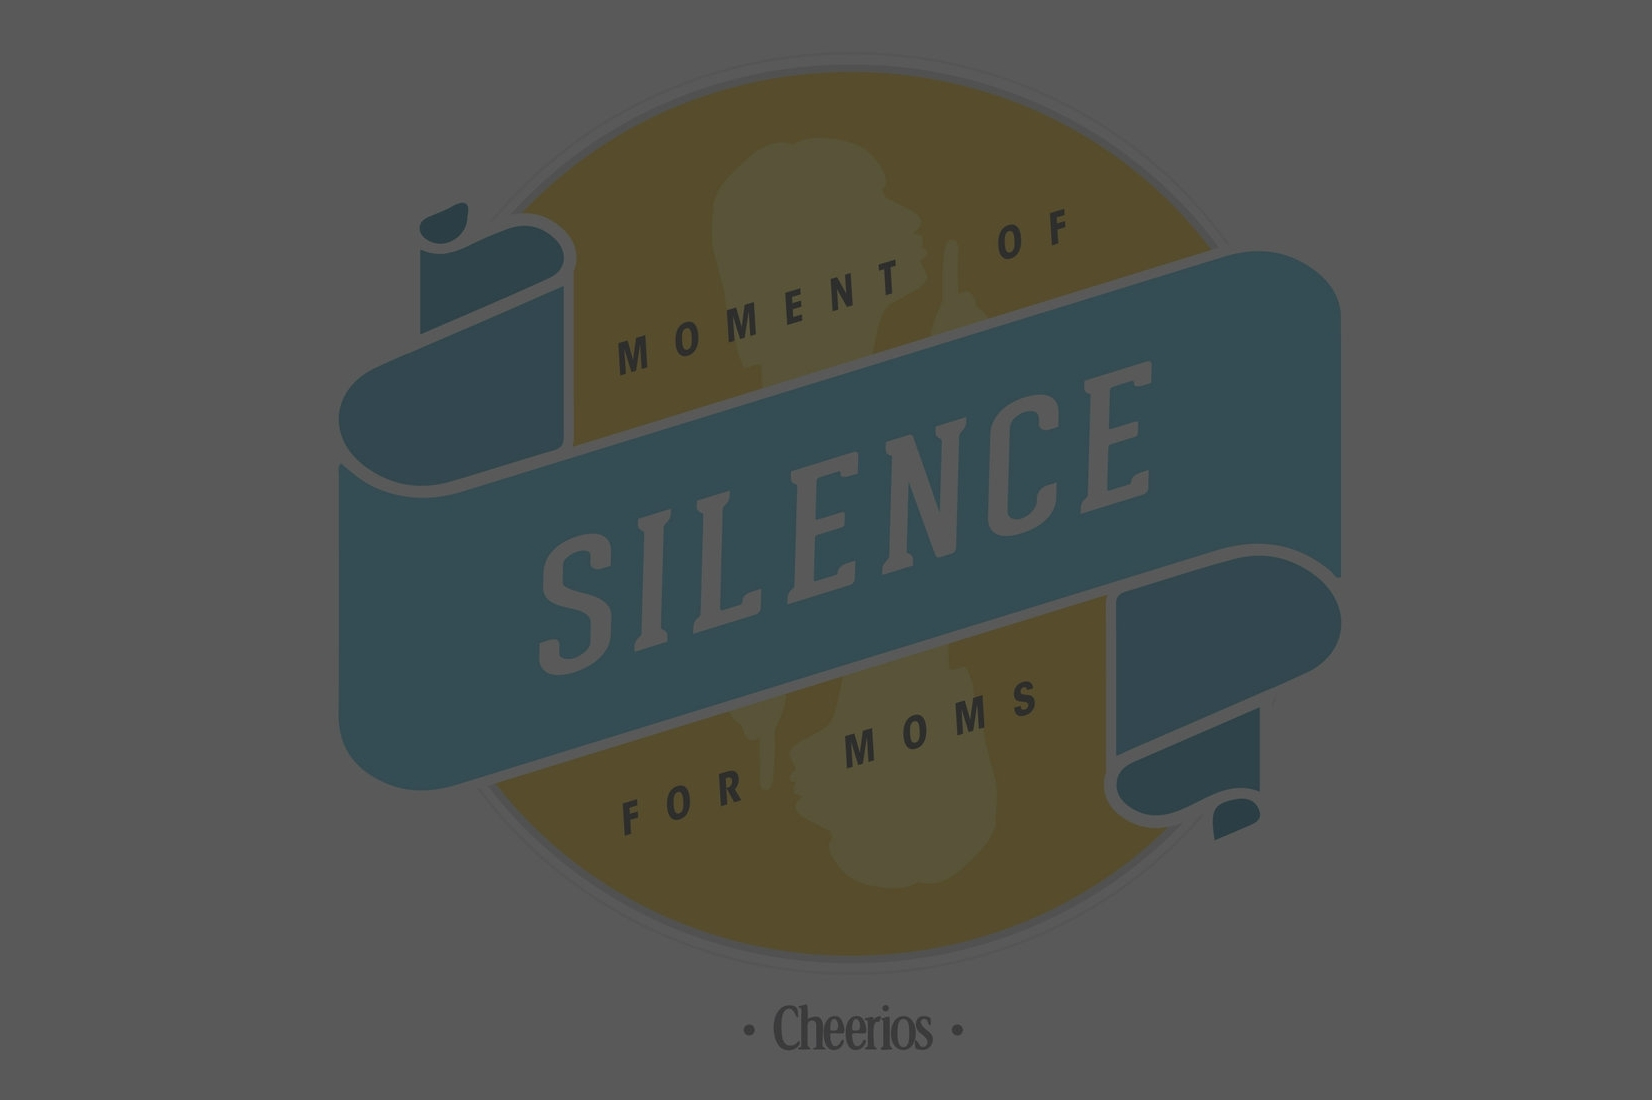 Brand Strategy: Cheerios - Moment of silence for moms